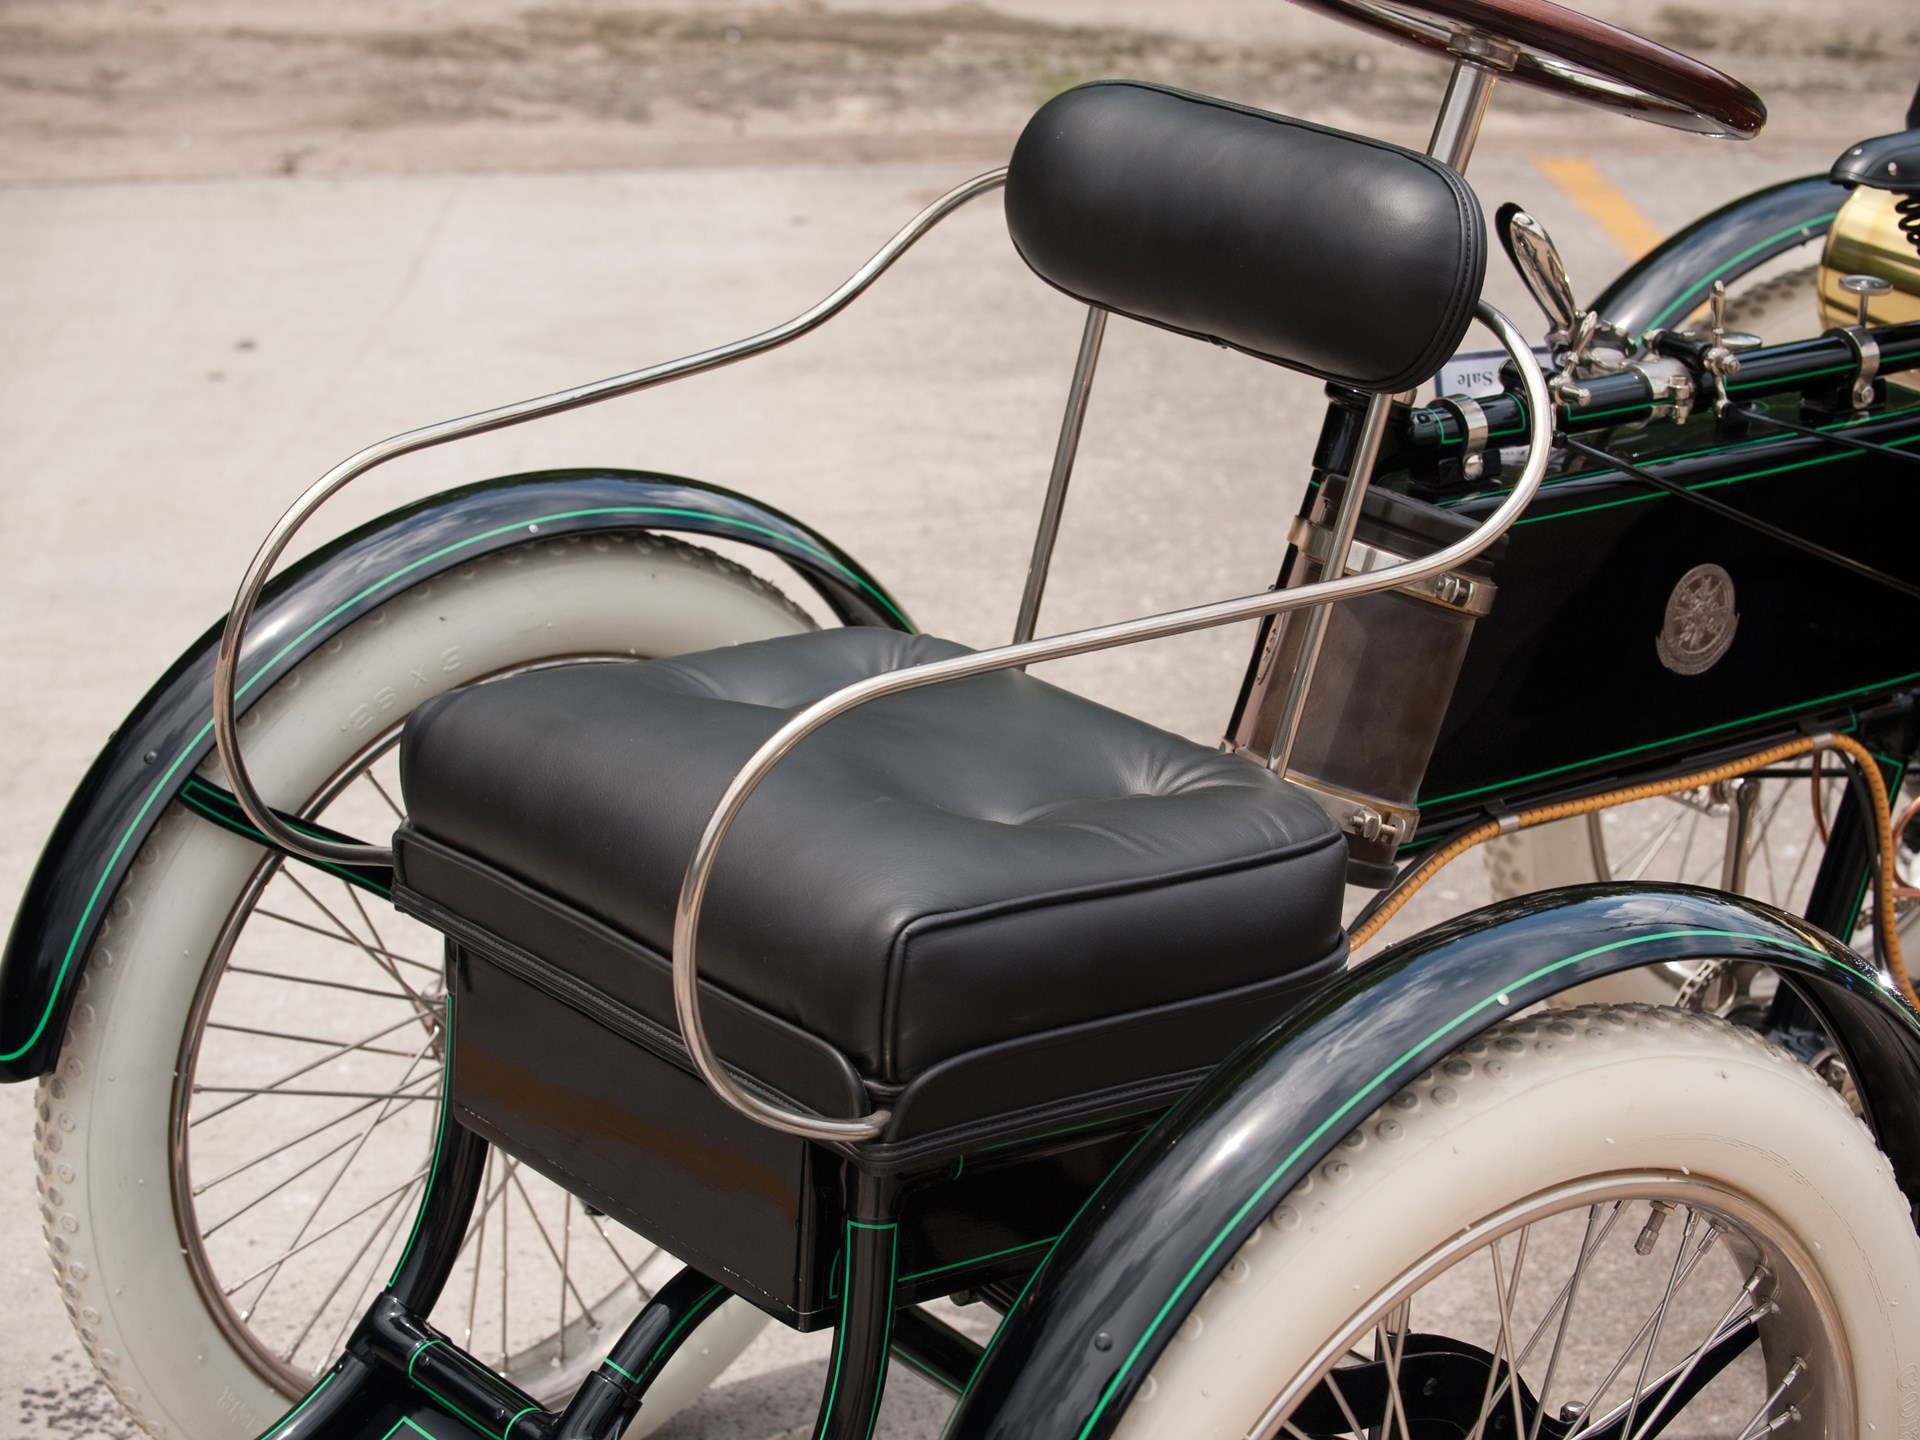 RM Sotheby's - 1900 DeDion-Bouton Perfecta Quadricycle